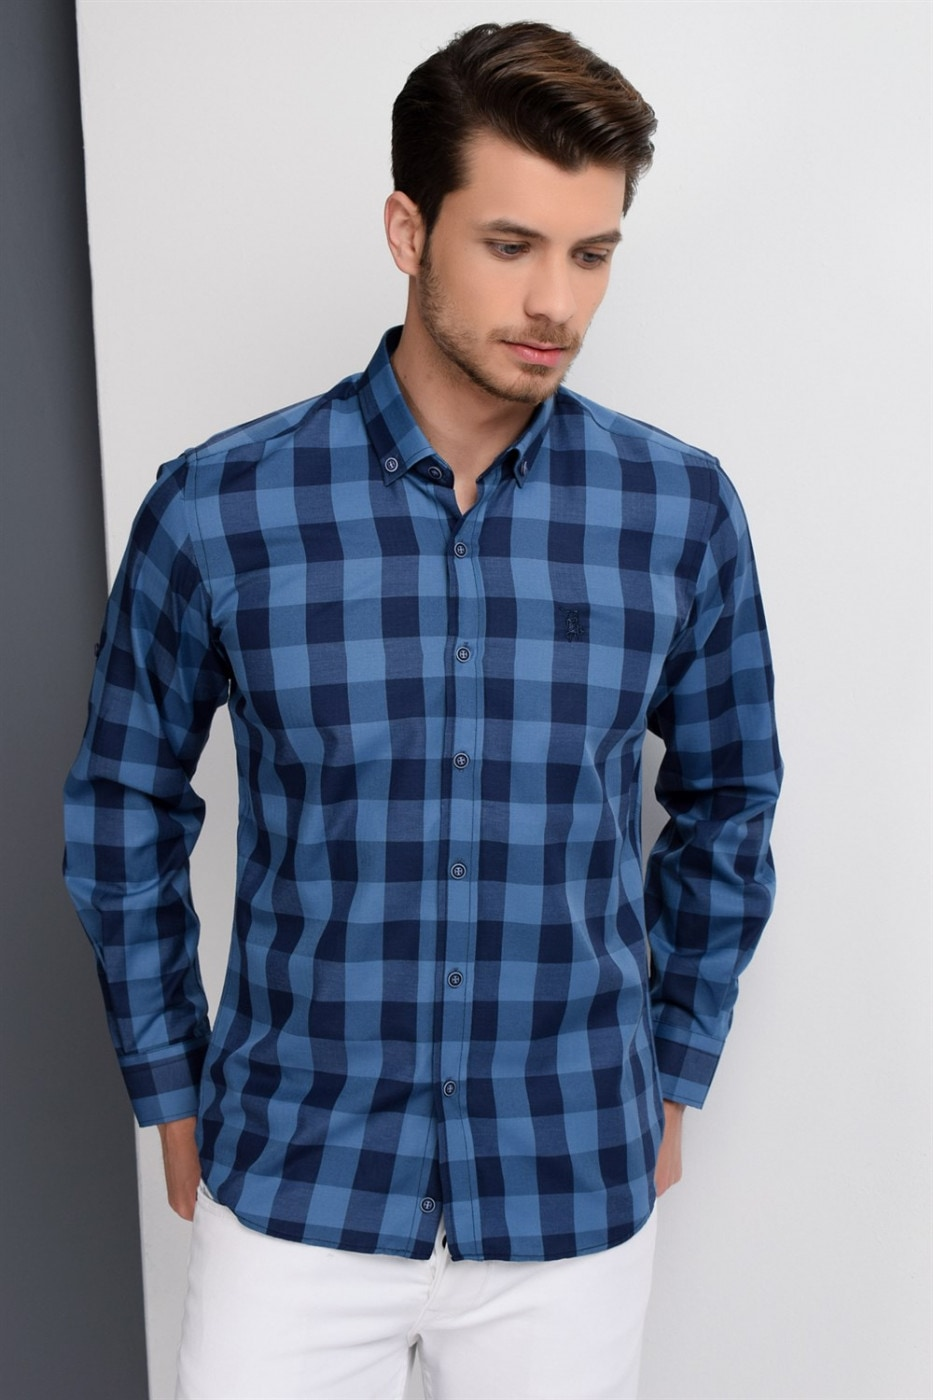 G665 DEWBERRY MEN's SHIRT-NICKNAME-BLUE